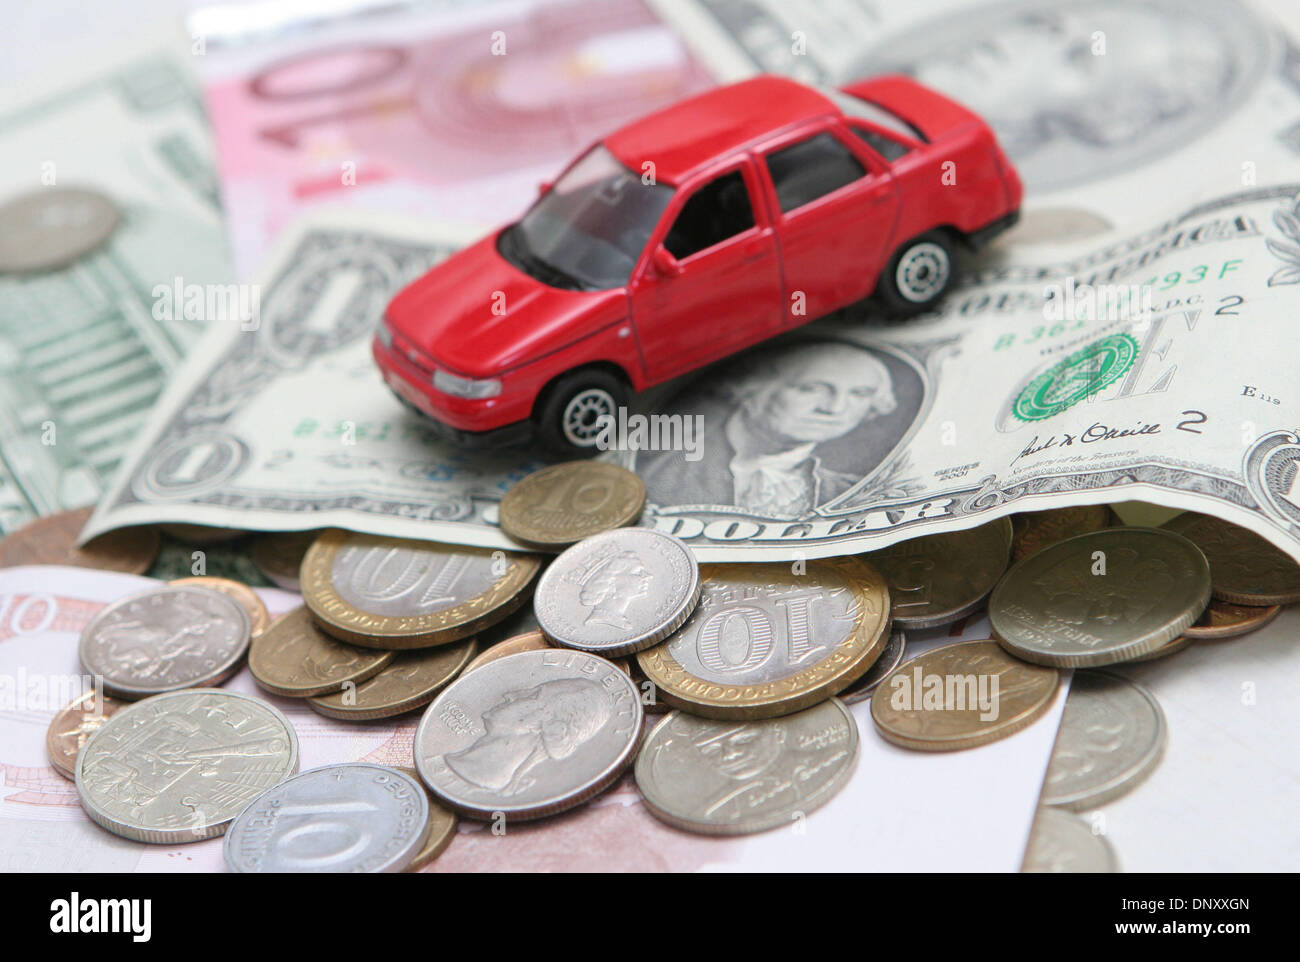 Nov 23, 2006 - Moscow, Russia - US Dollars automobile, cars, power ...